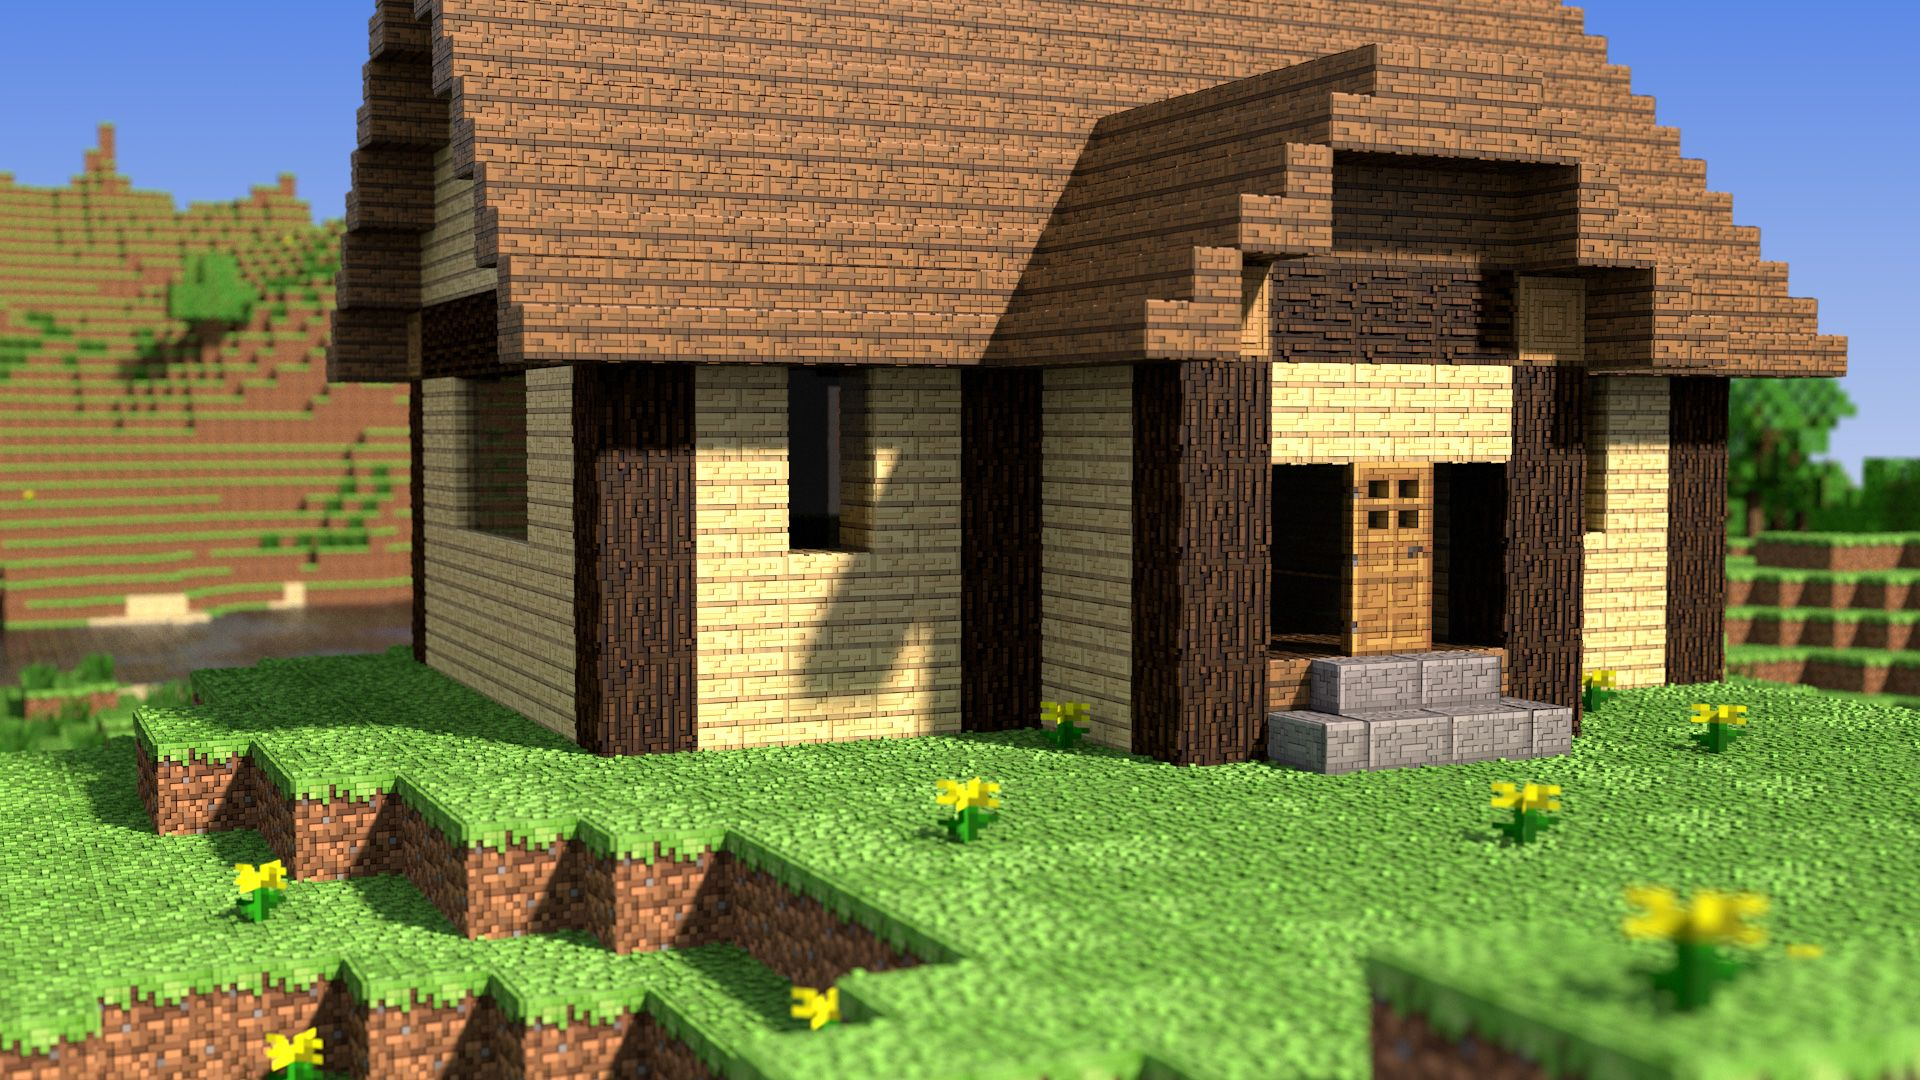 minecraft scenery is quite better than my previous renders of rh pinterest ca